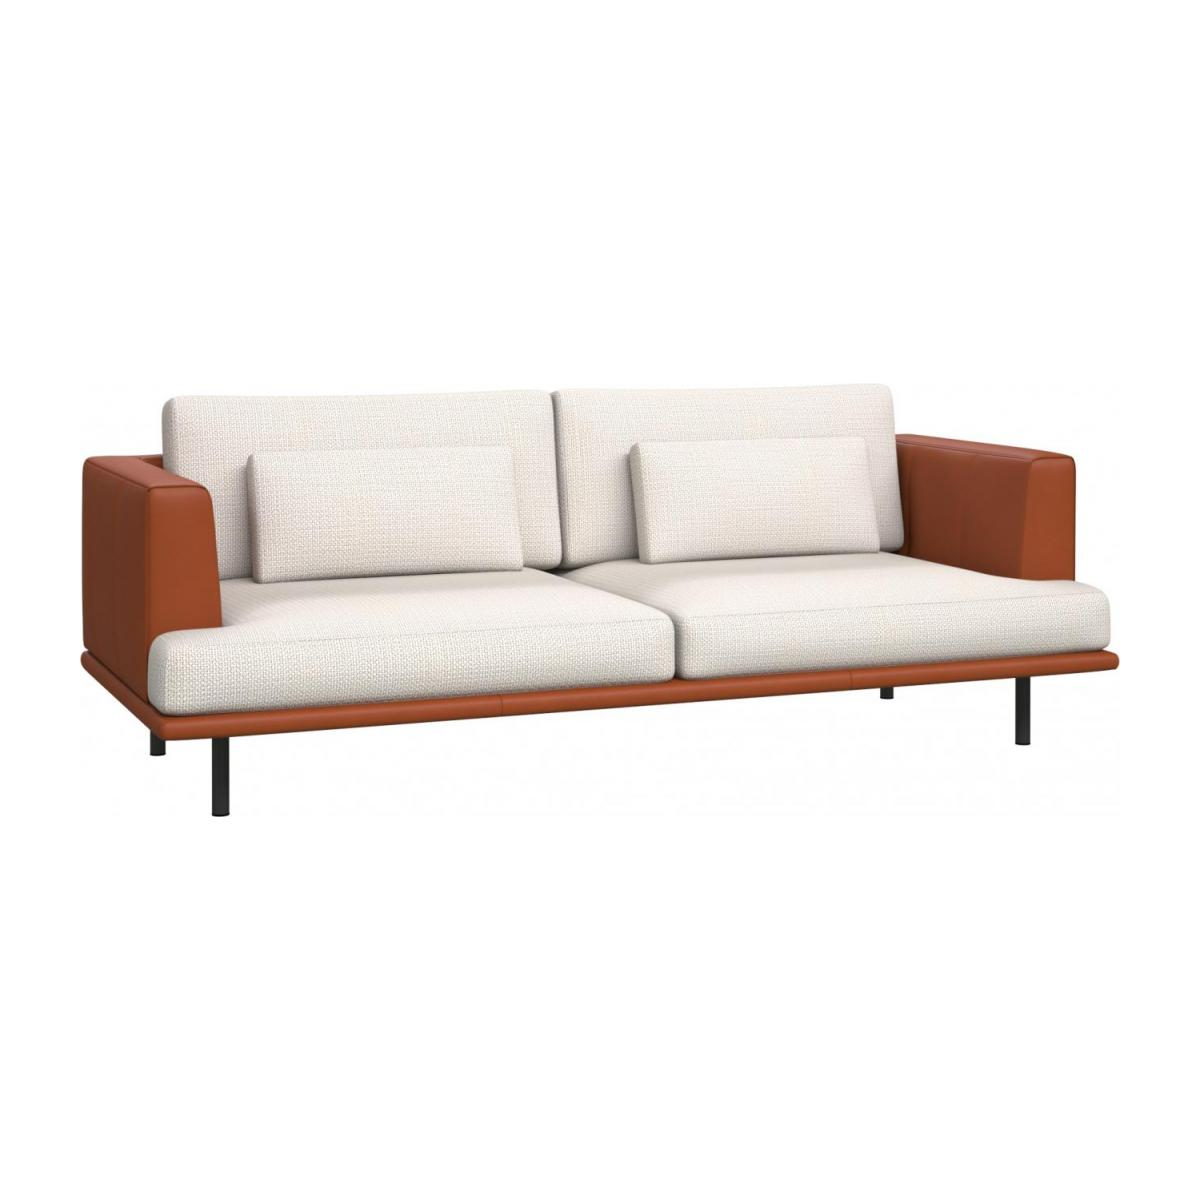 3 seater sofa in Fasoli fabric, snow white with base and armrests in brown leather n°1